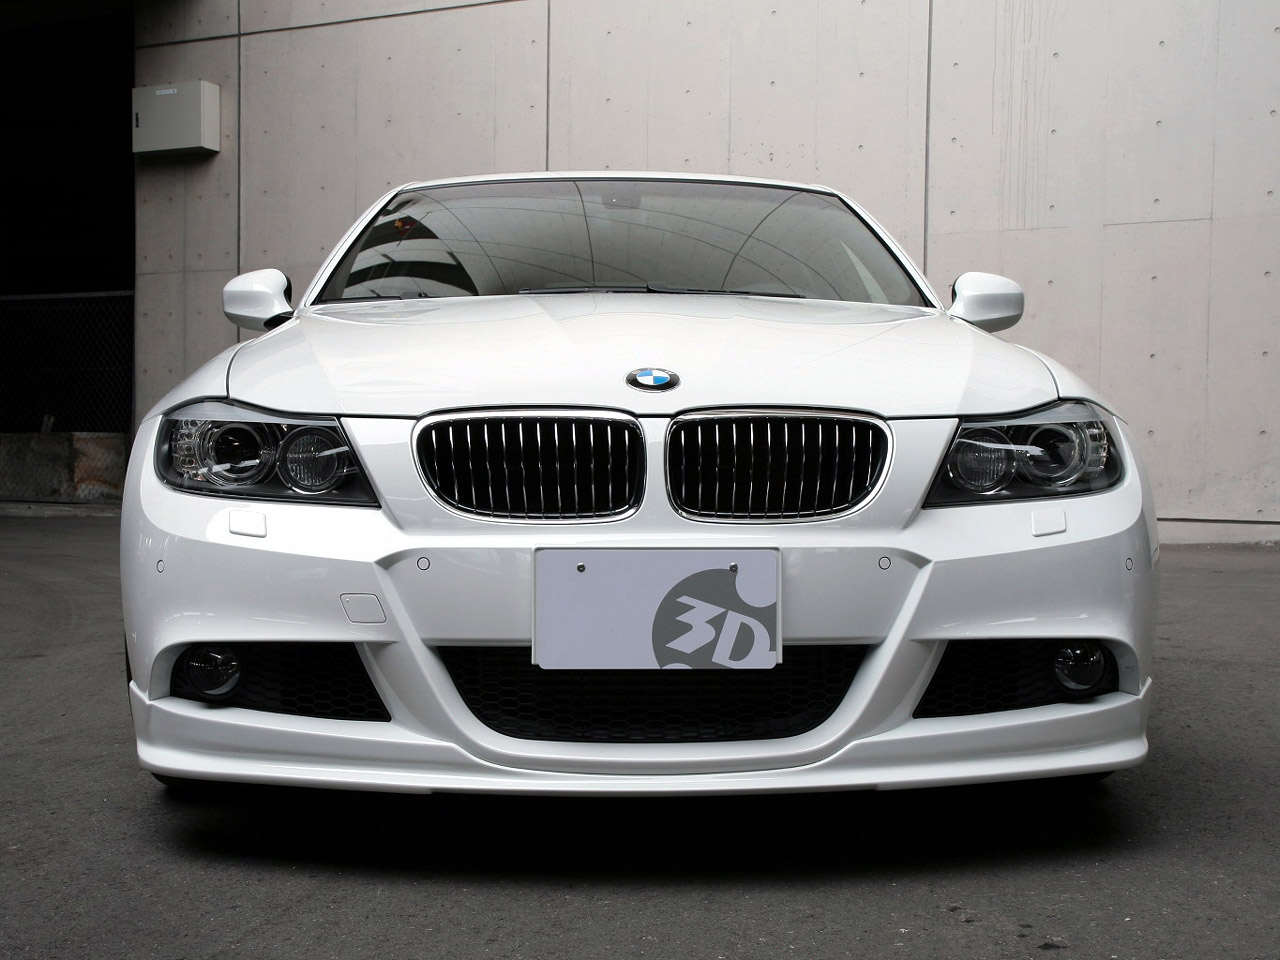 3d design bmw 3 series touring e91 2008 3d design bmw 3 series touring e91 2008 photo 06 car. Black Bedroom Furniture Sets. Home Design Ideas